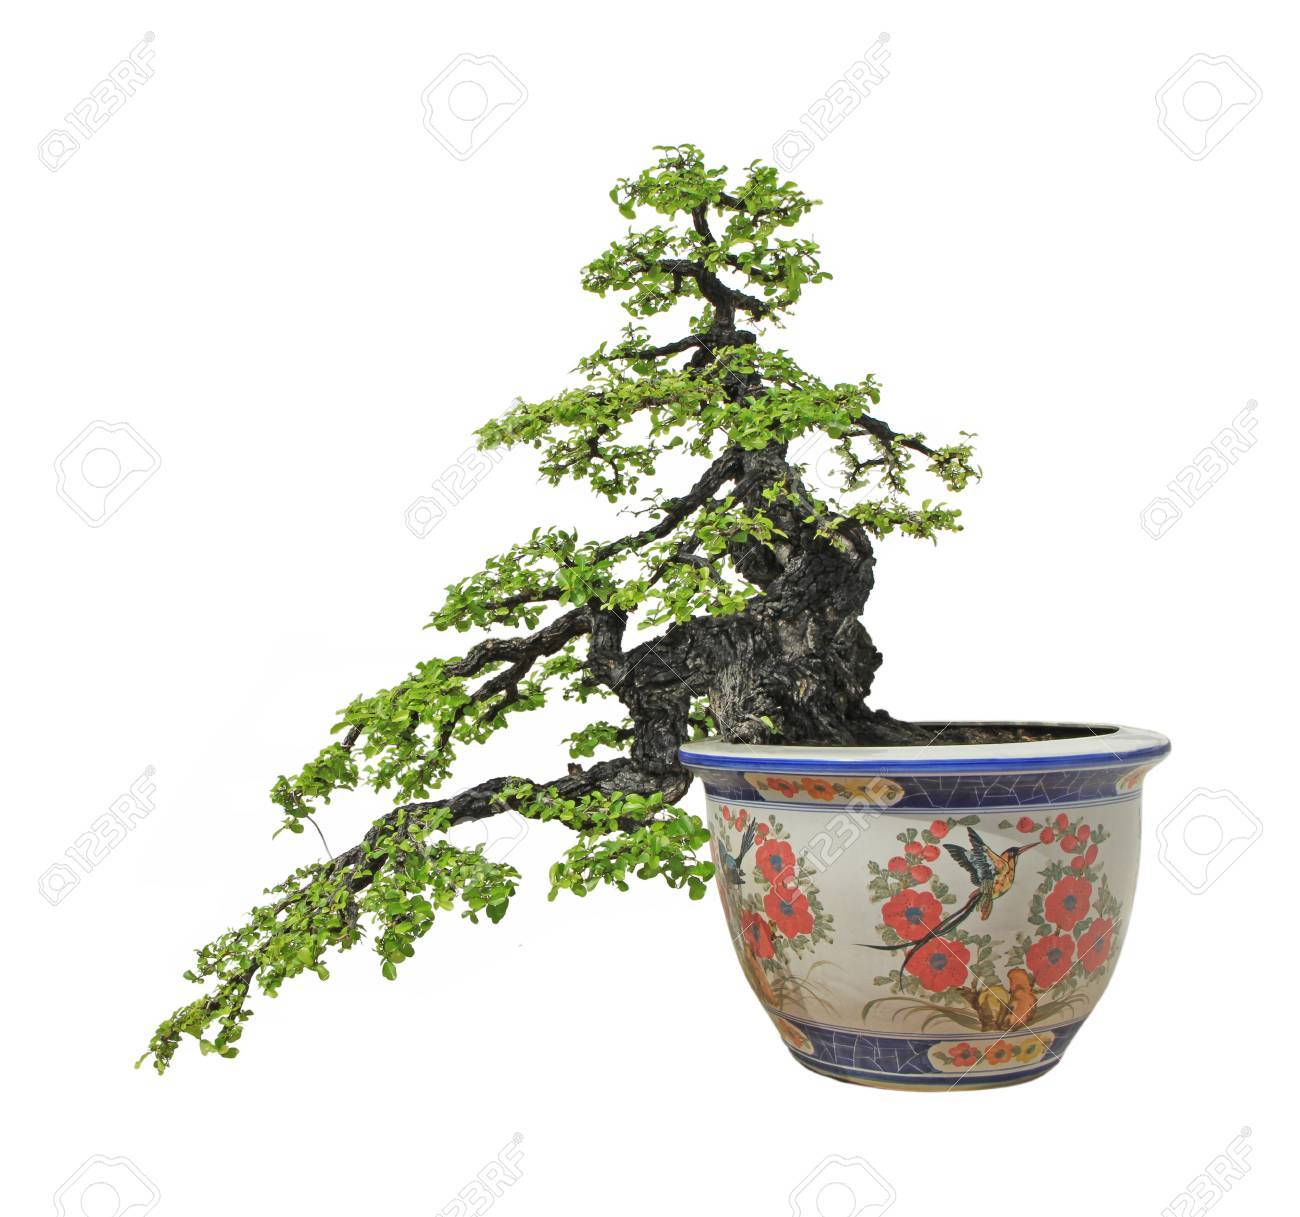 Banyan Or Ficus Bonsai Tree Isolated On White Background Stock Photo Picture And Royalty Free Image Image 30112862